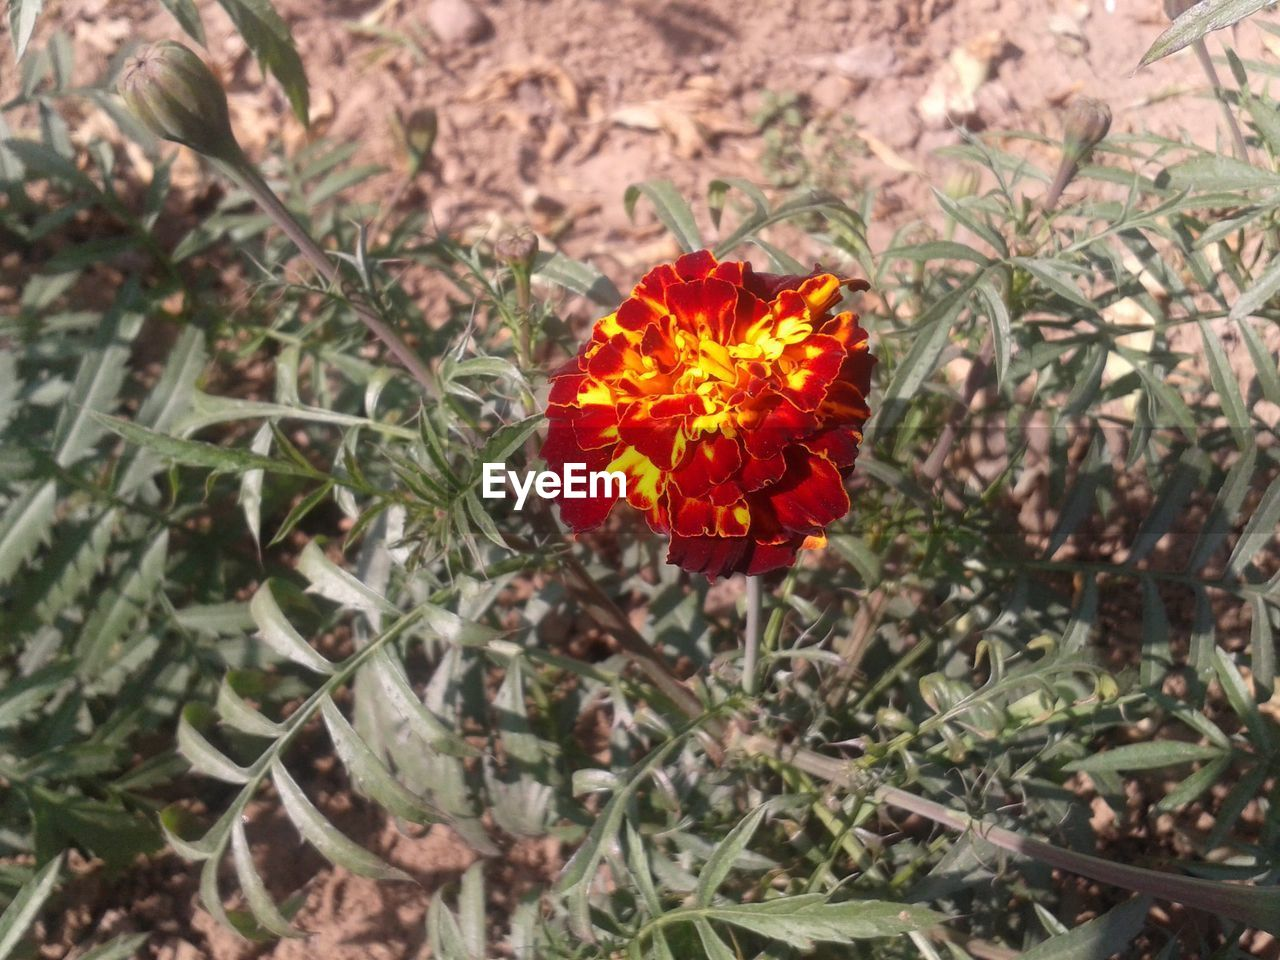 flower, growth, high angle view, plant, petal, blooming, red, nature, freshness, no people, flower head, fragility, beauty in nature, day, outdoors, close-up